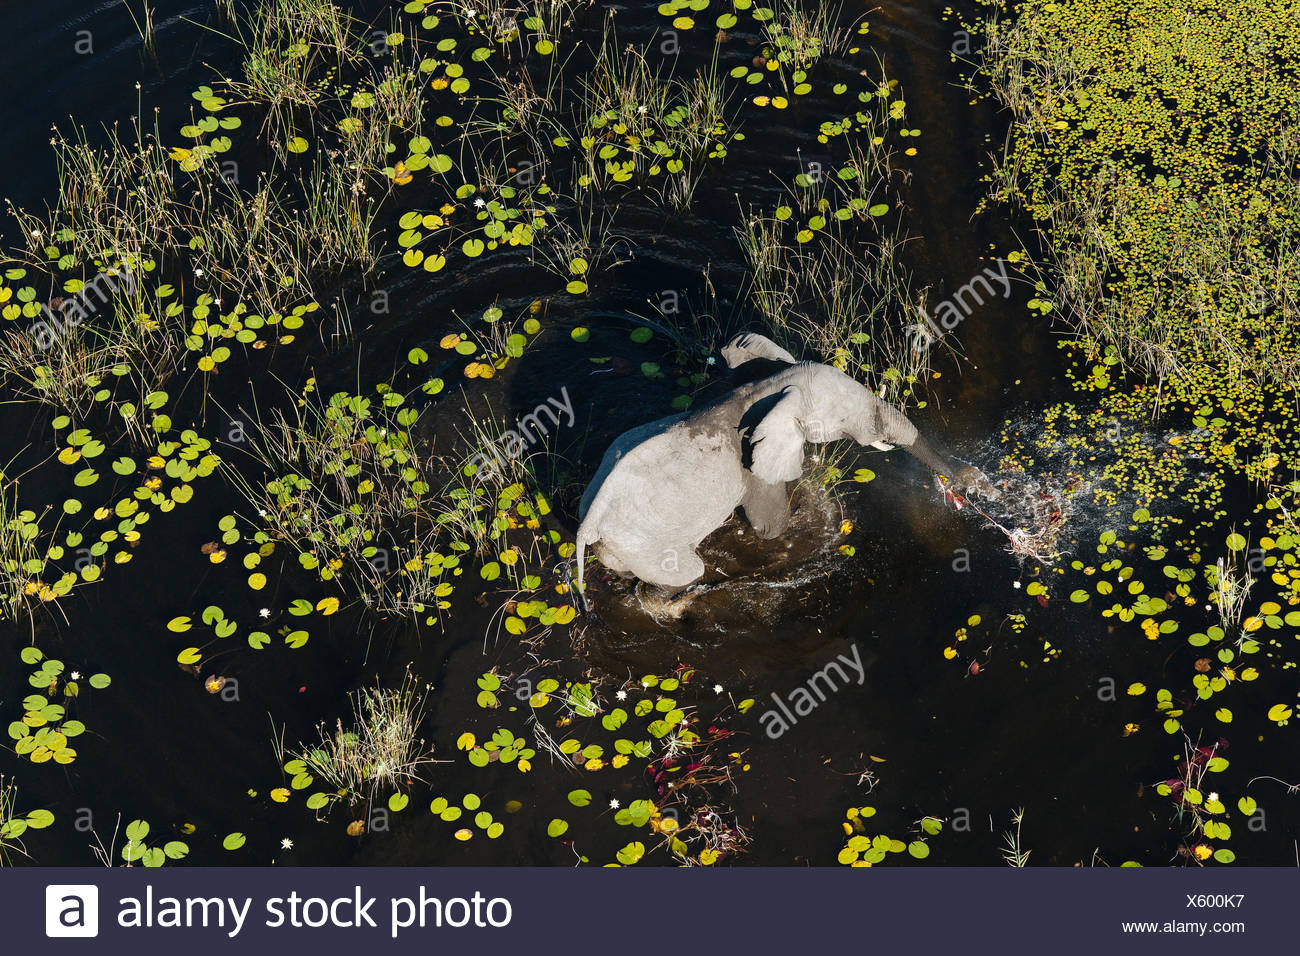 An aerial view of an African elephant, Loxodonta africana, walking in a flood plain. - Stock Image